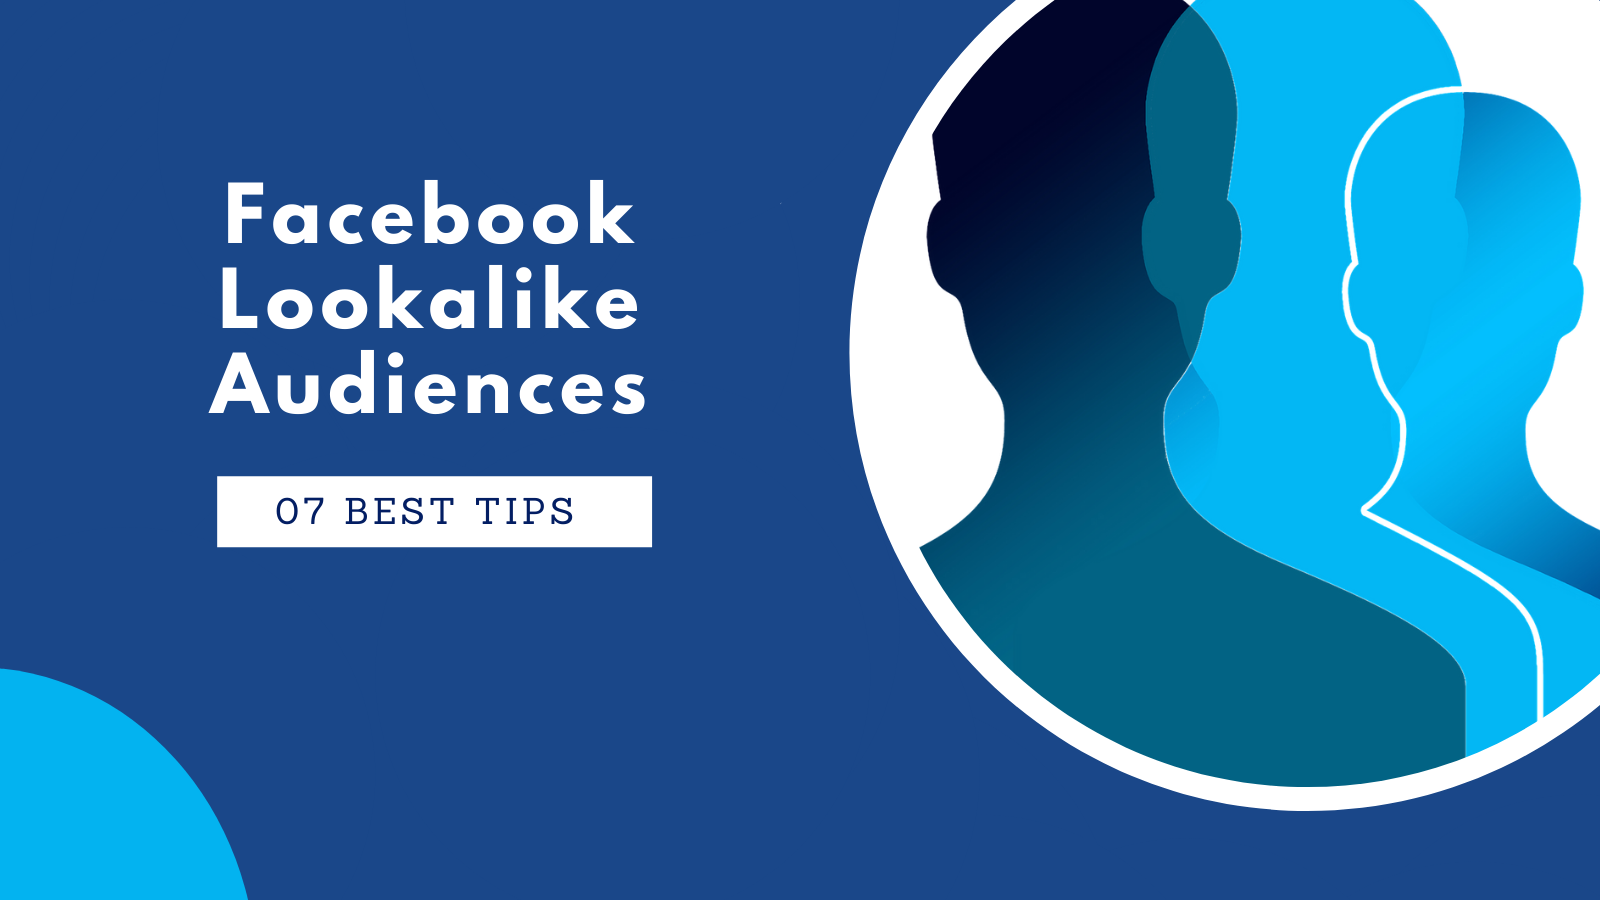 tips-for-using-facebook-lookalike-audiences